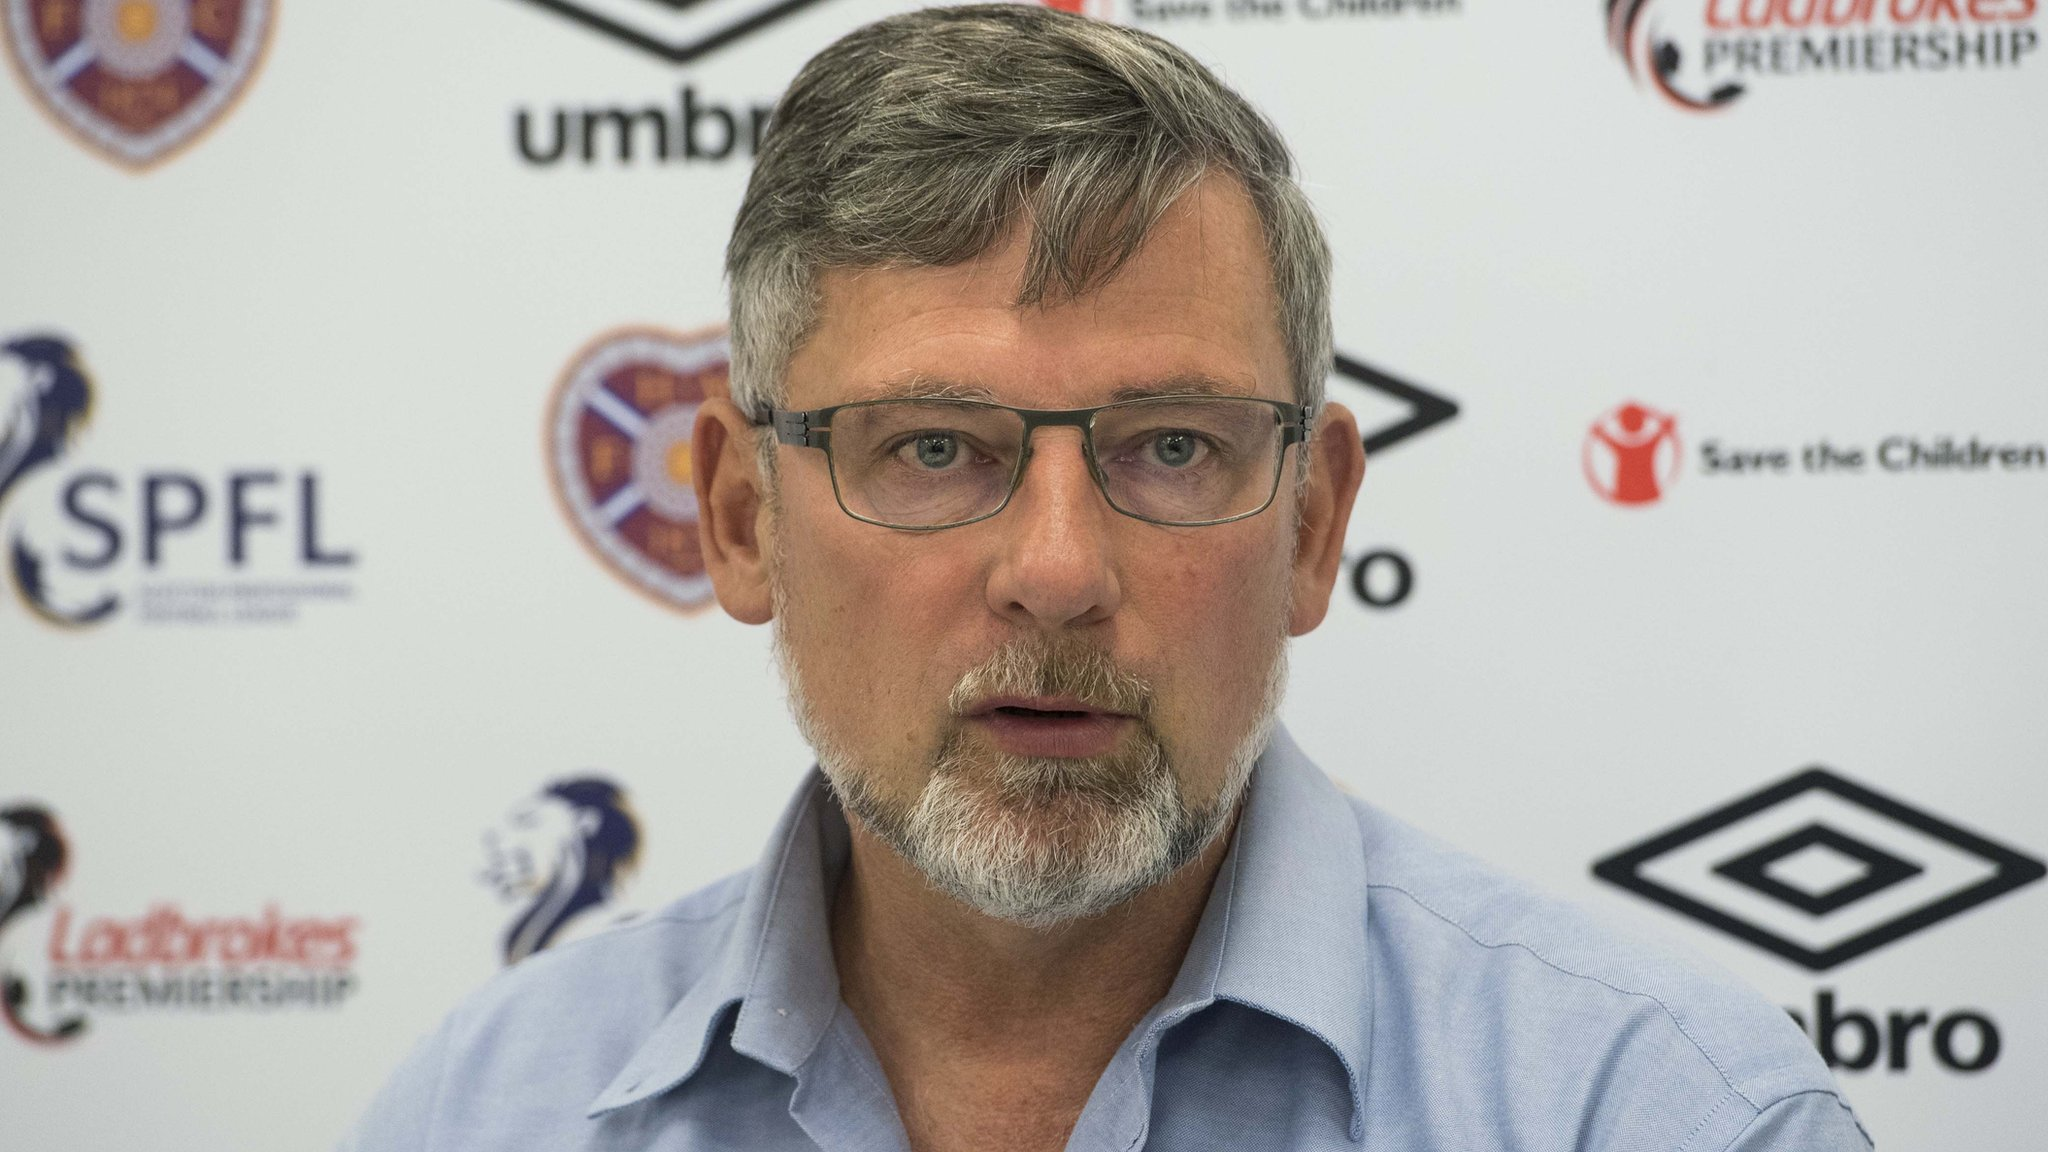 Levein 'feeling great' & aiming to be back for Motherwell game